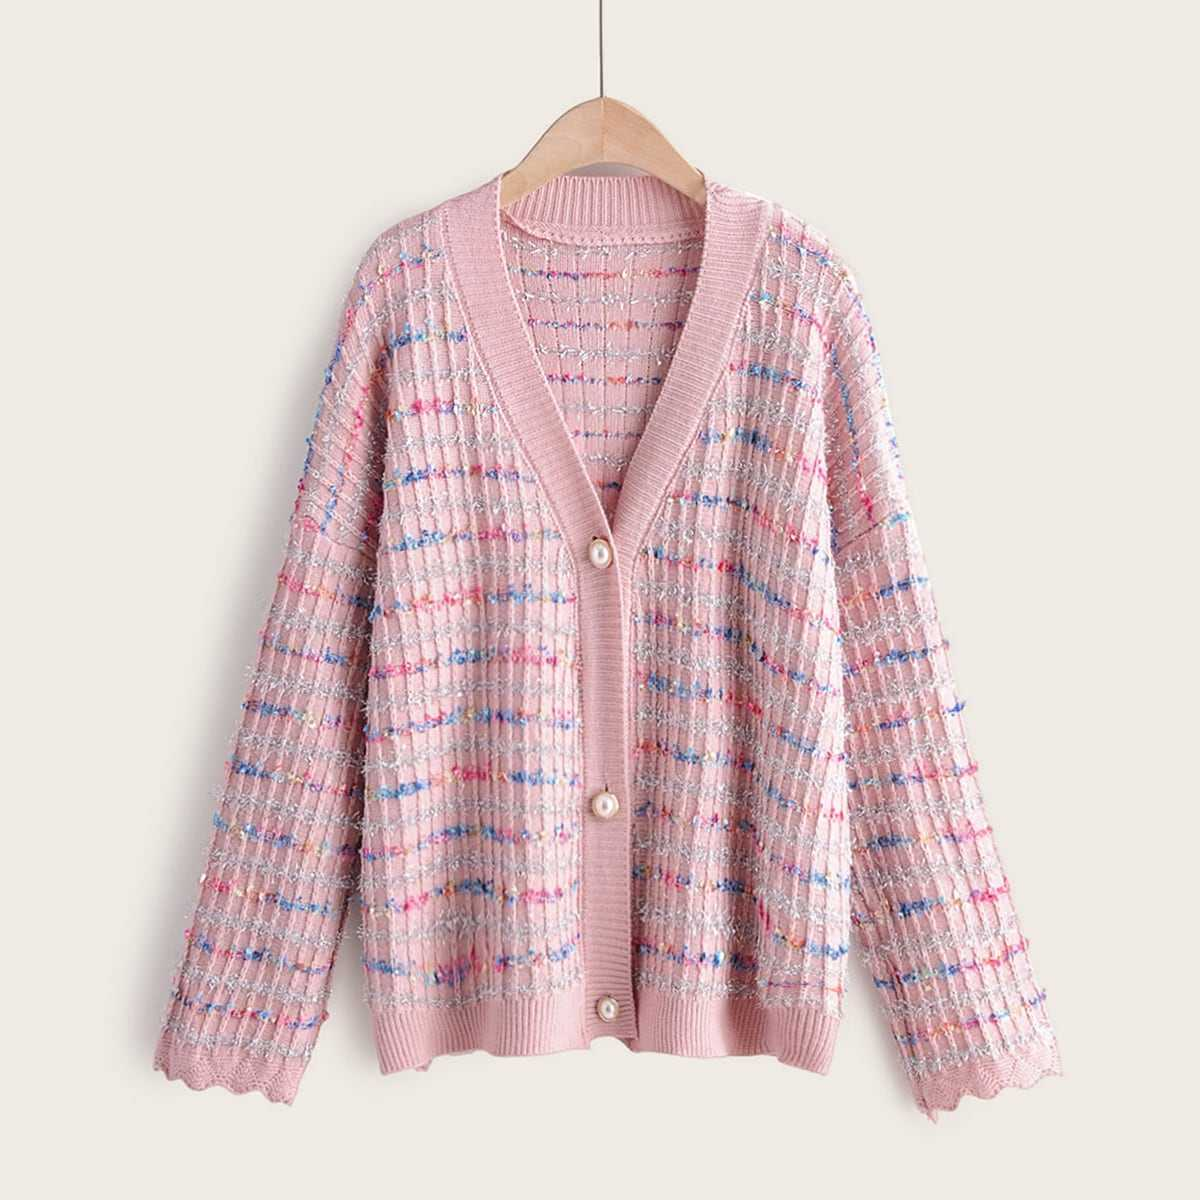 Drop Shoulder Rainbow Stripe Button Front Cardigan in Pink by ROMWE on GOOFASH